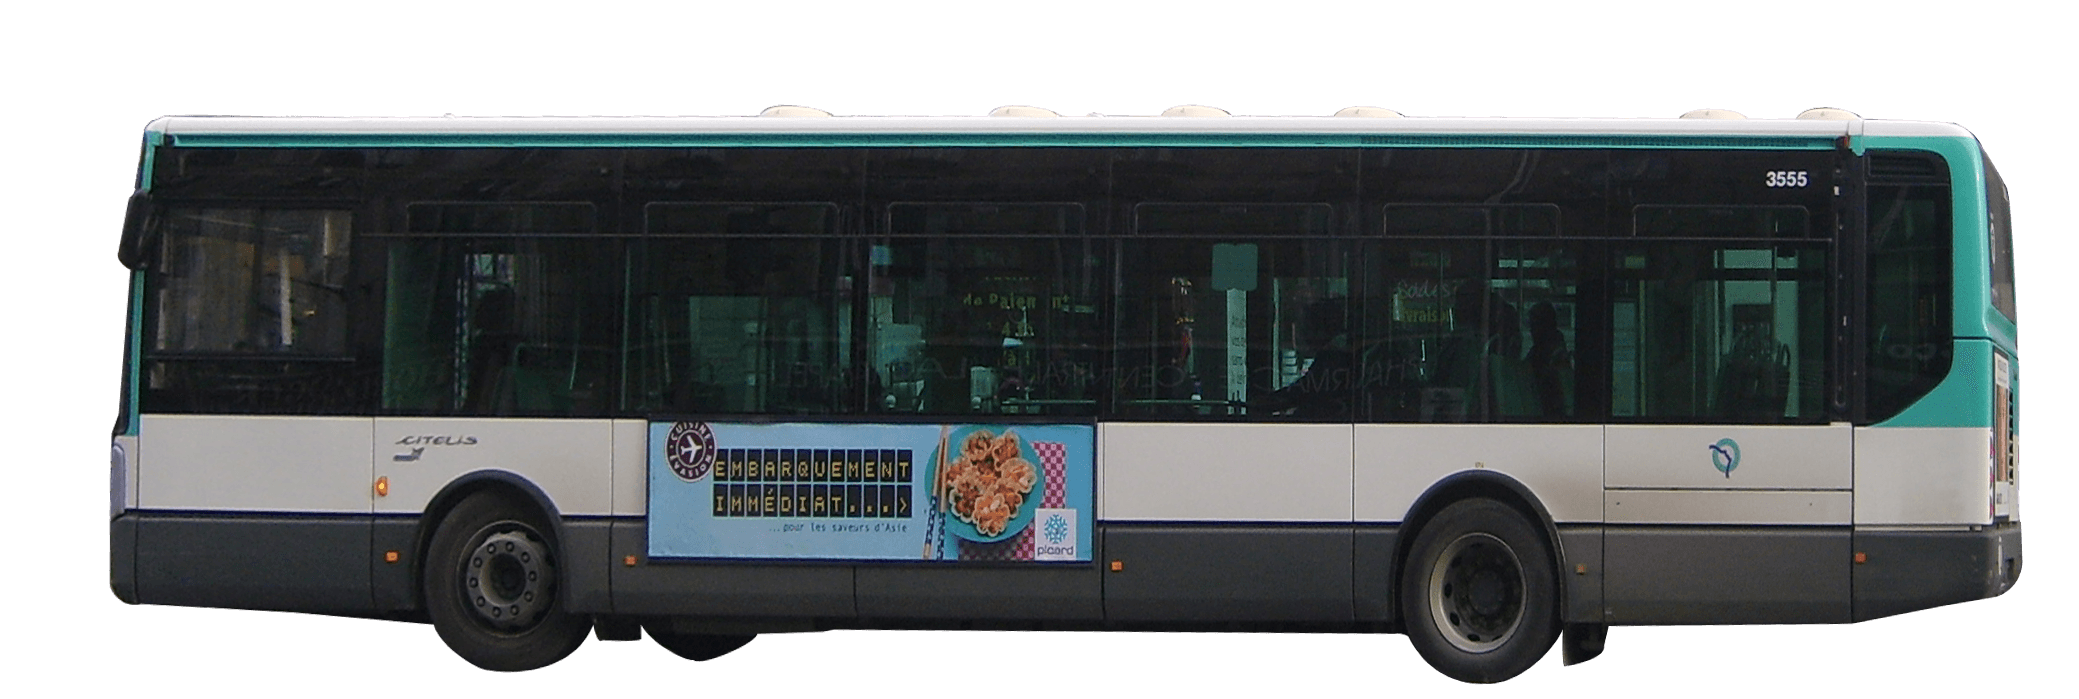 Bus Png Image PNG Image